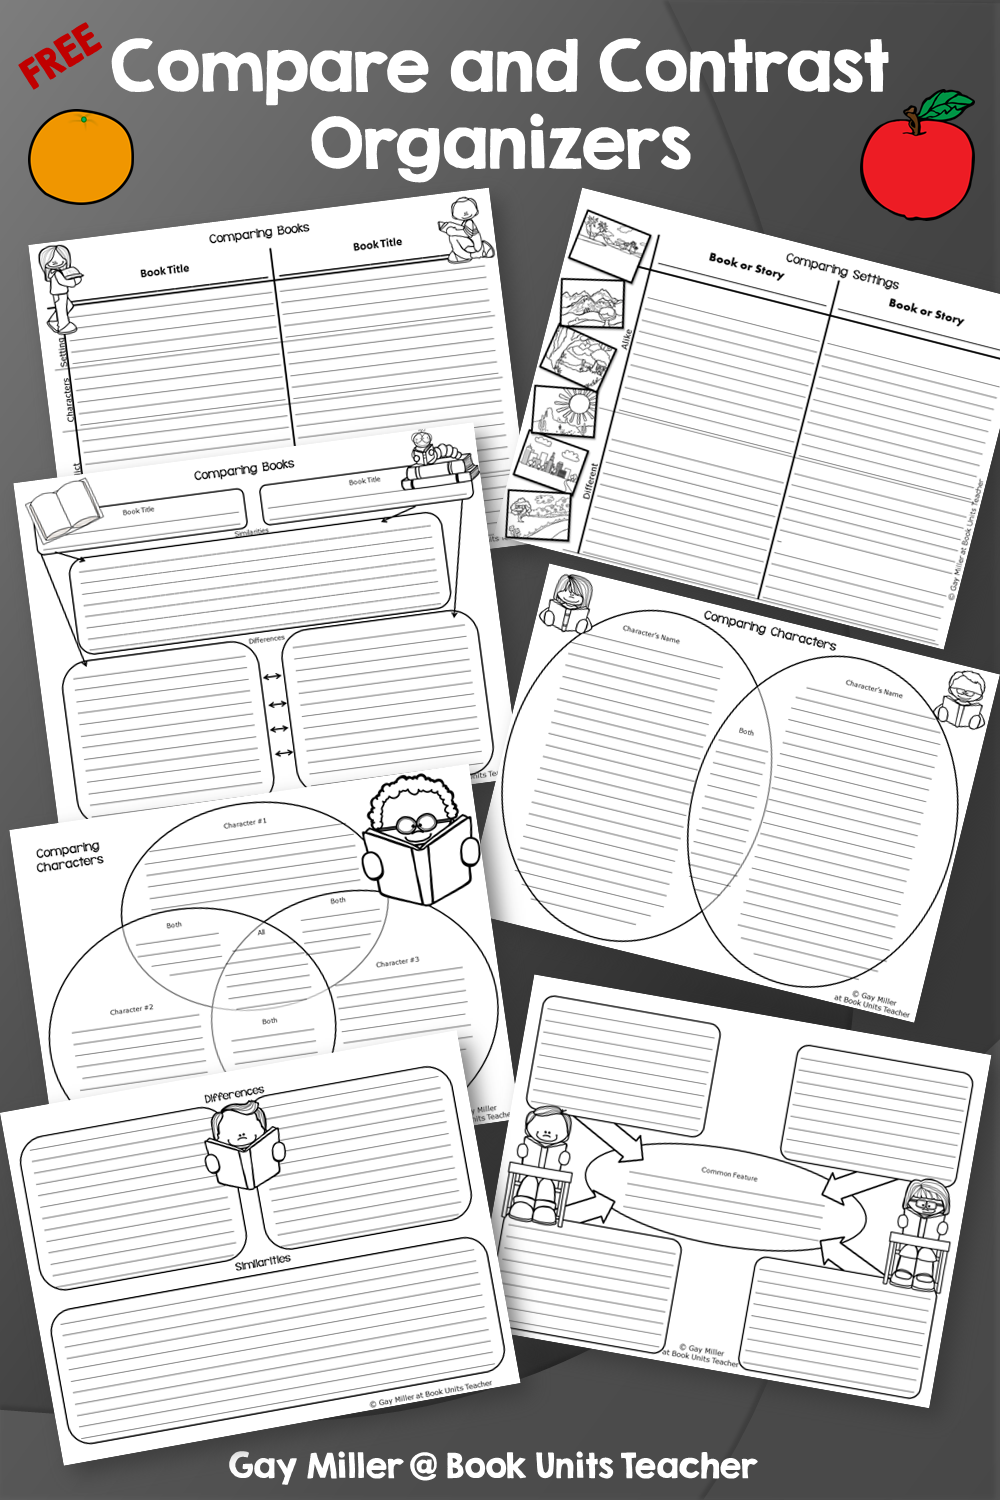 ECHO by Pam Munoz Ryan Teaching Ideas - Grab a free compare and contrast organizers which is great for upper elementary including 3rd, 4th, and 5th graders.